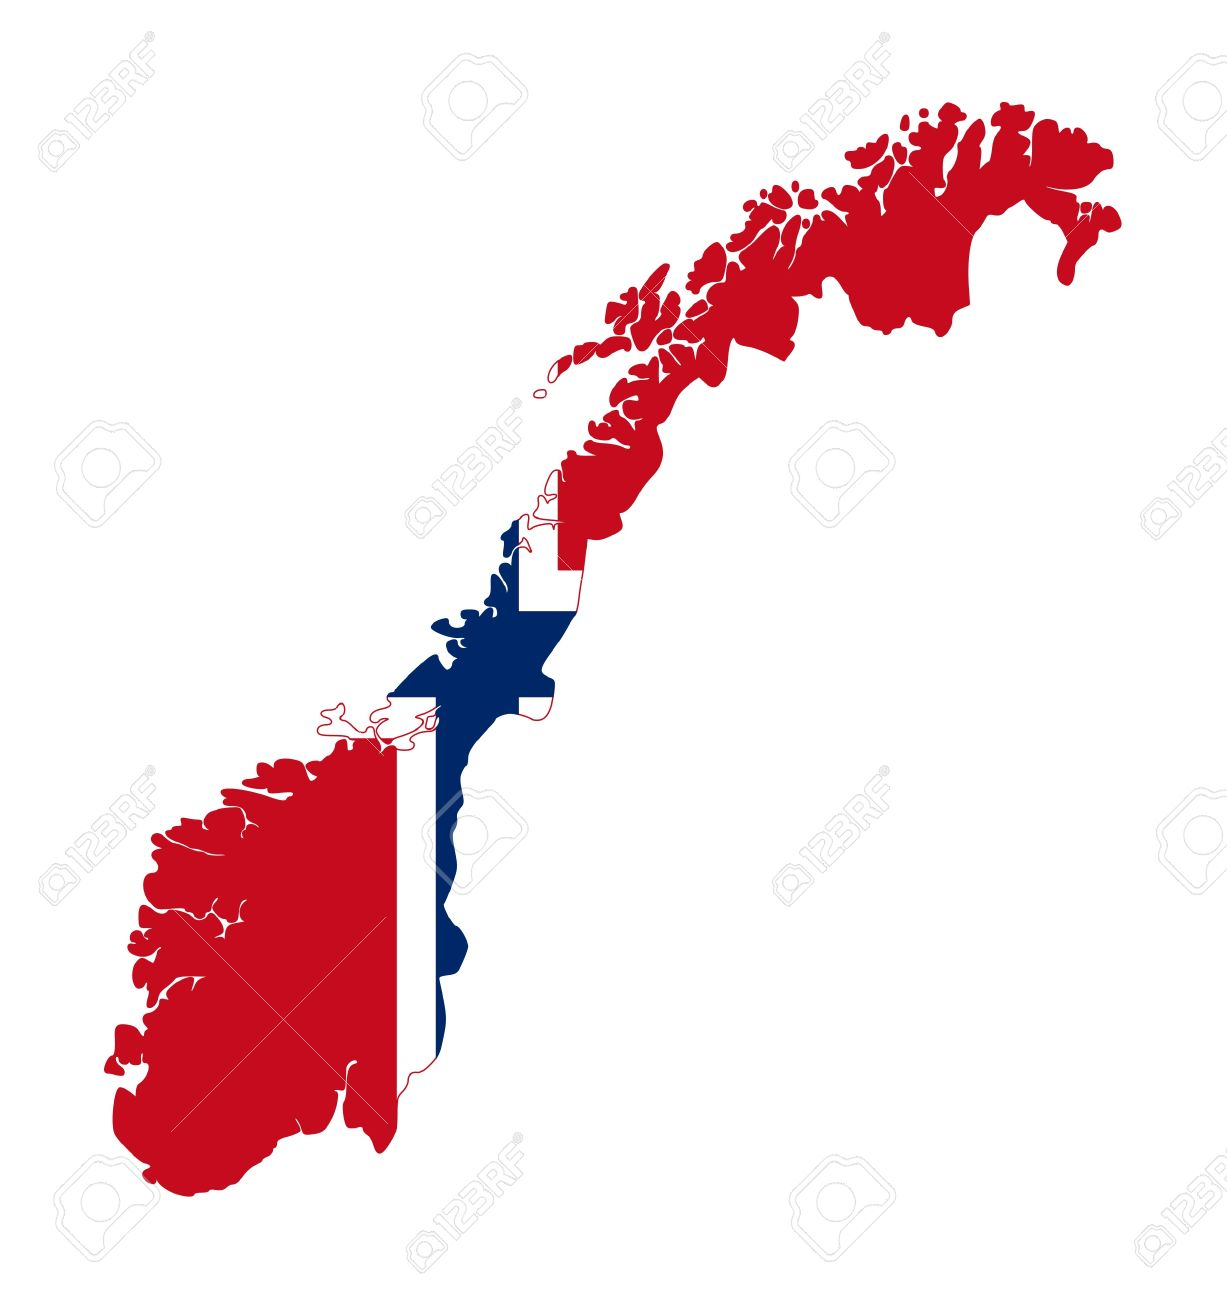 Illustration of Norway flag on map of country; isolated on white background. Stock Illustration - 9320540